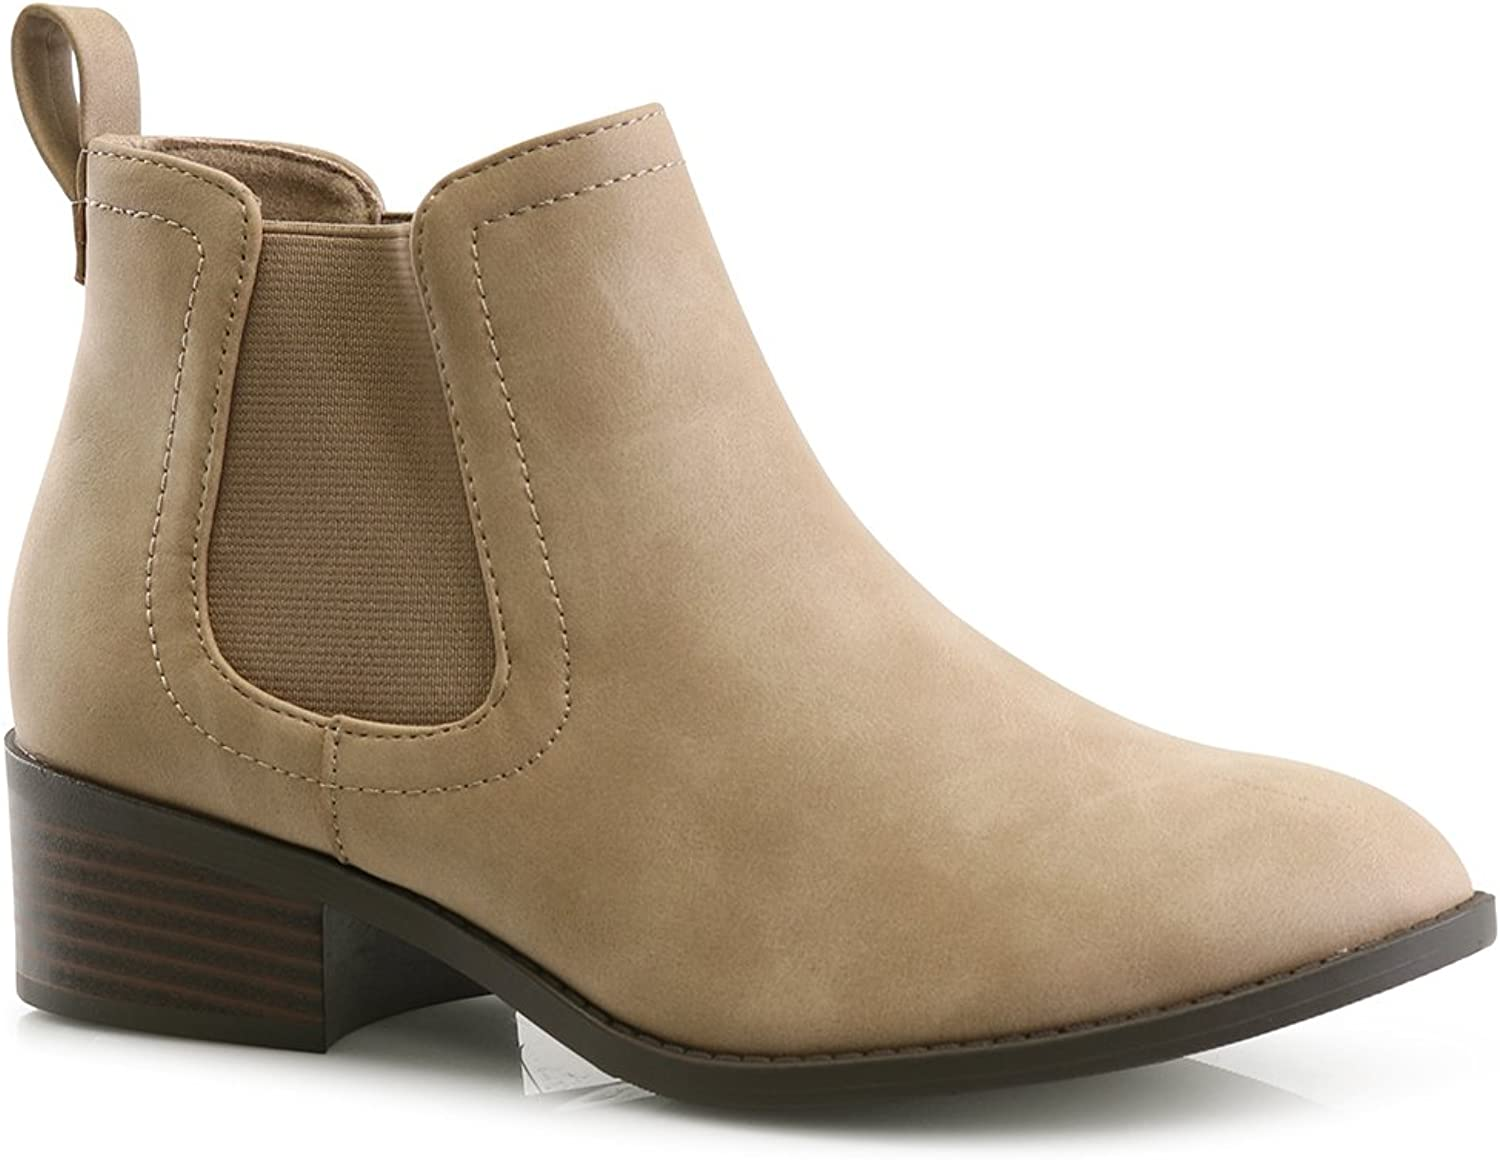 LUSTHAVE Open Peep Toe Cut Out Chunky Heel Ankle Booties High Heel Boots Faux Suede